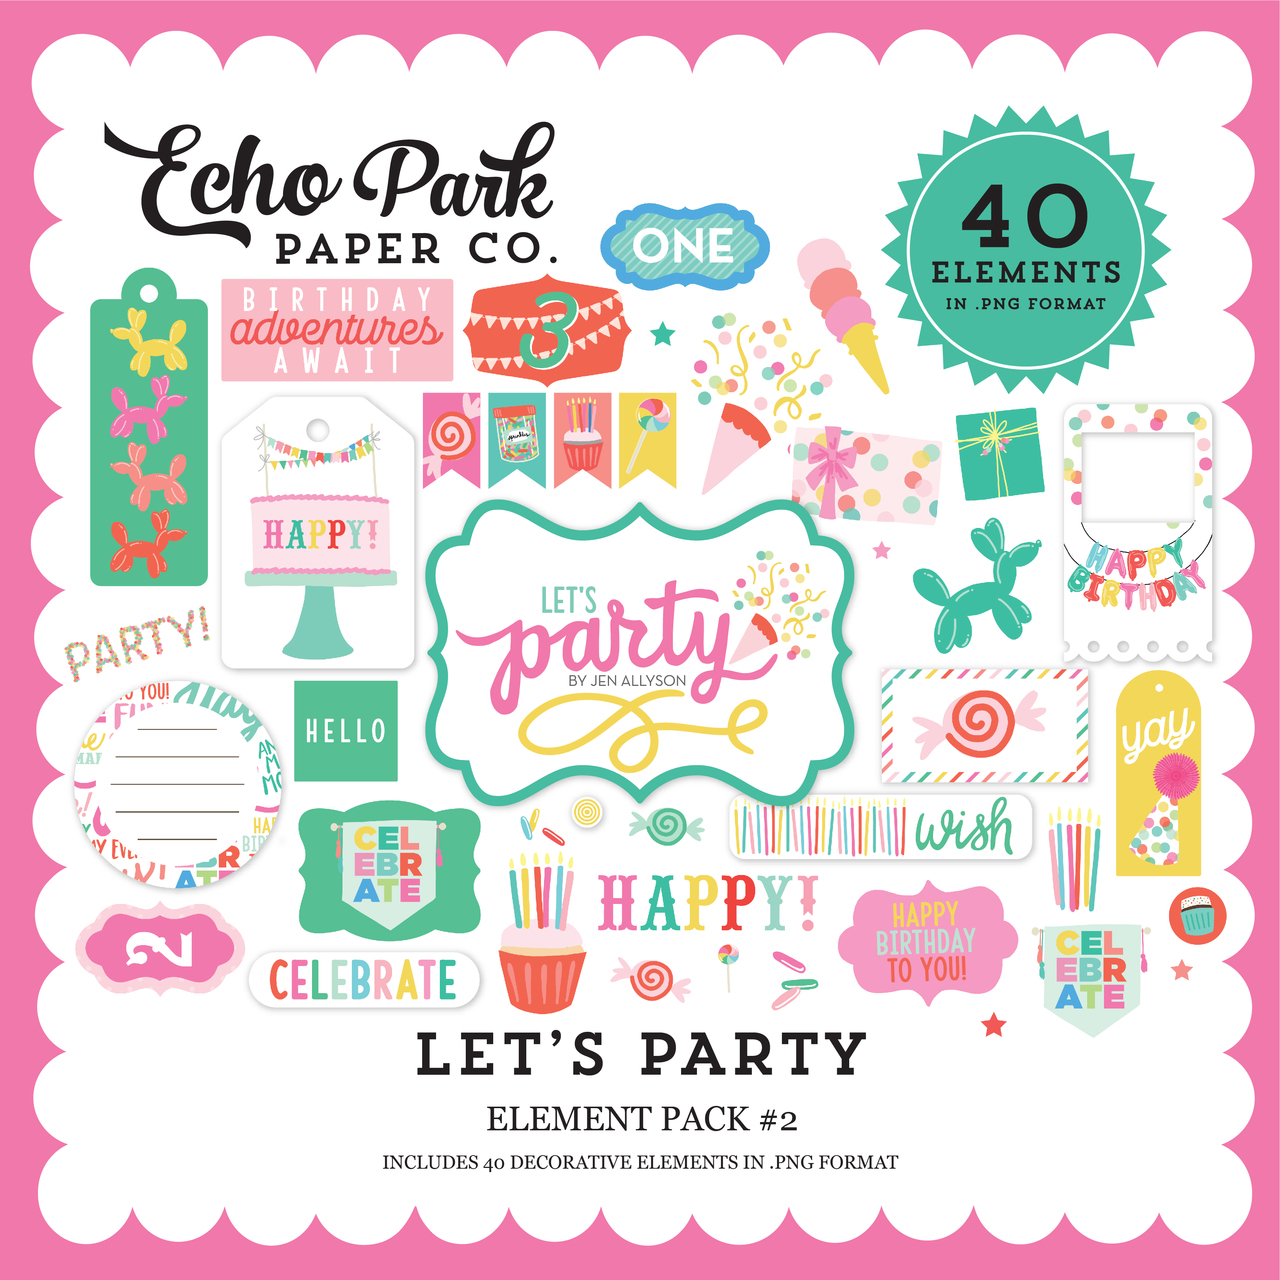 Let's Party Element Pack #2